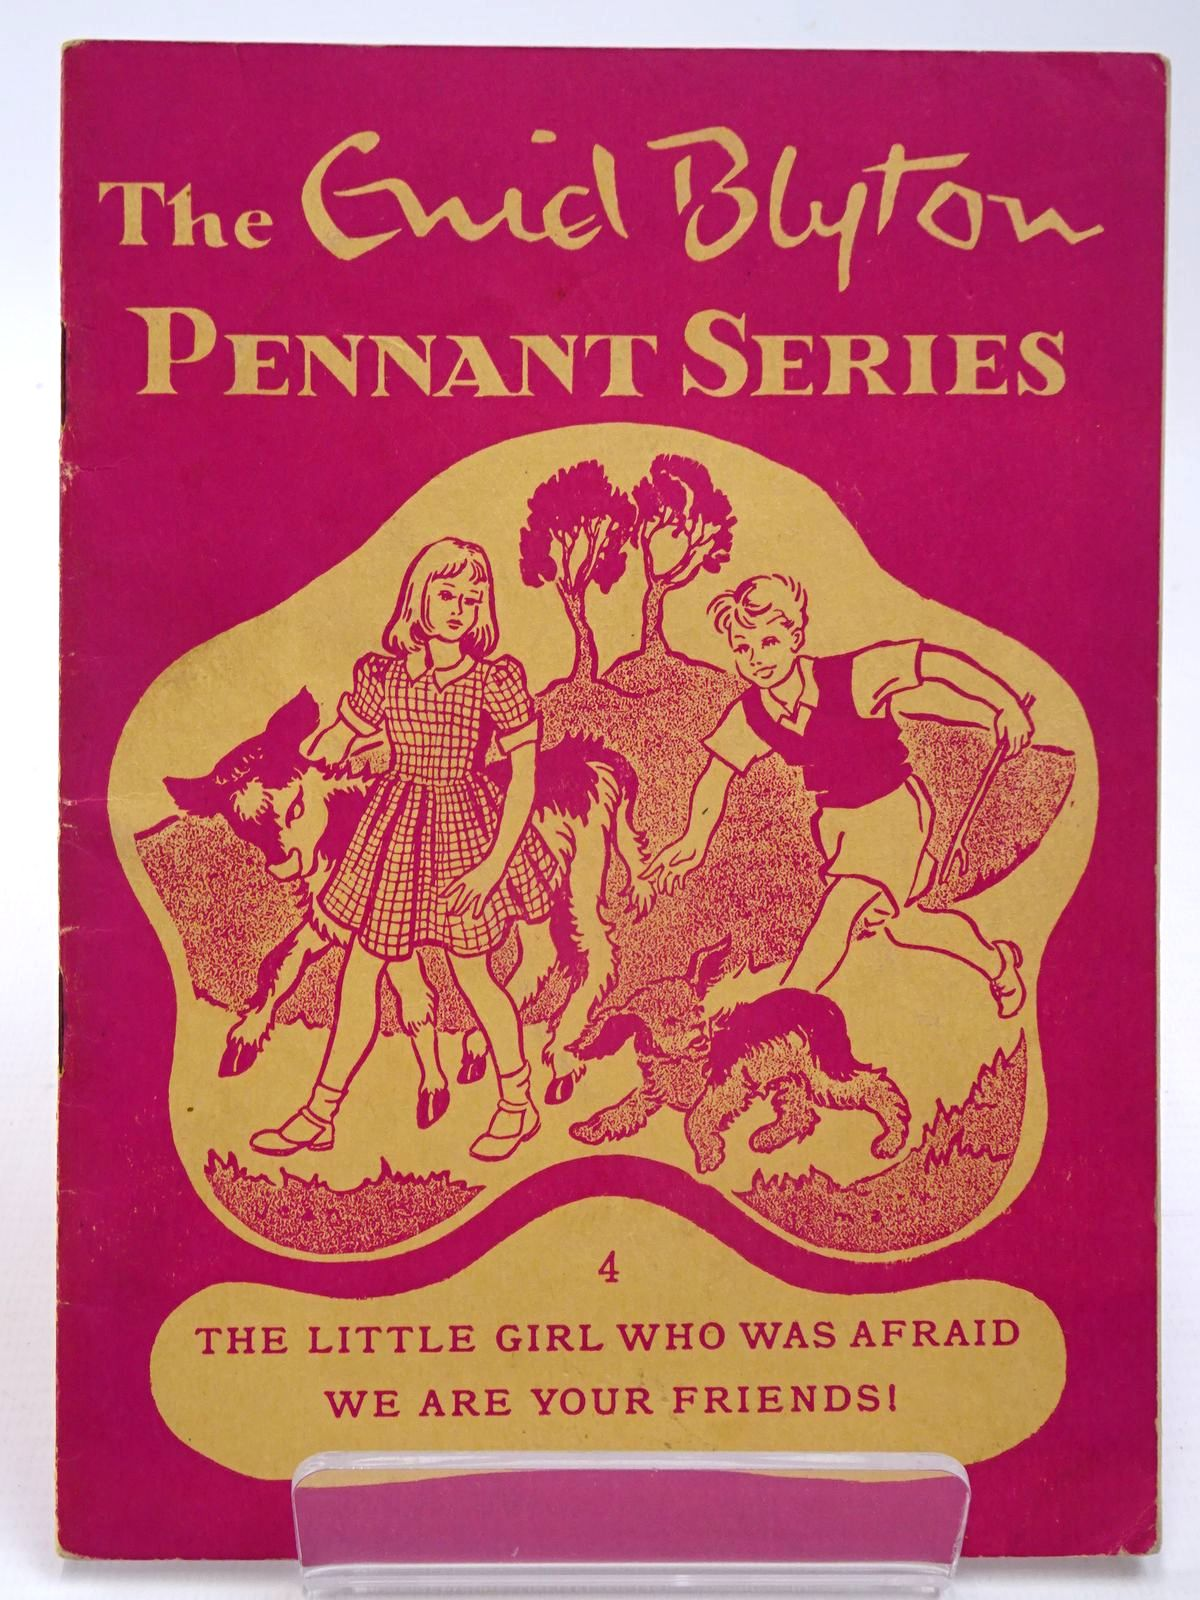 Photo of THE ENID BLYTON PENNANT SERIES No. 4 THE LITTLE GIRL WHO WAS AFRAID / WE ARE YOUR FRIENDS!- Stock Number: 2130524